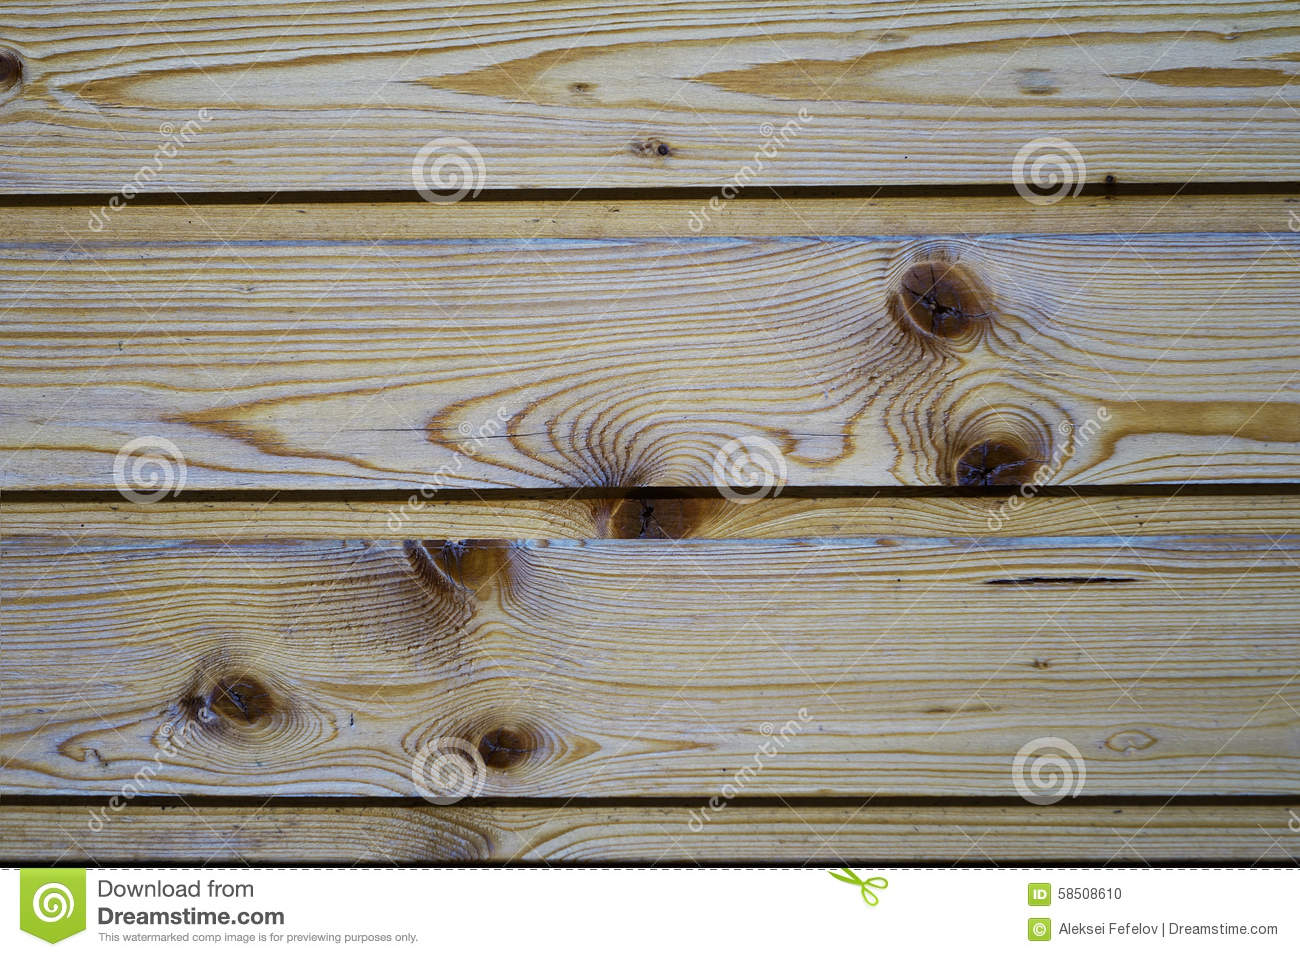 Impression Photo Planche Bois mur, planches en bois, pin la texture de l'arbre fond photo